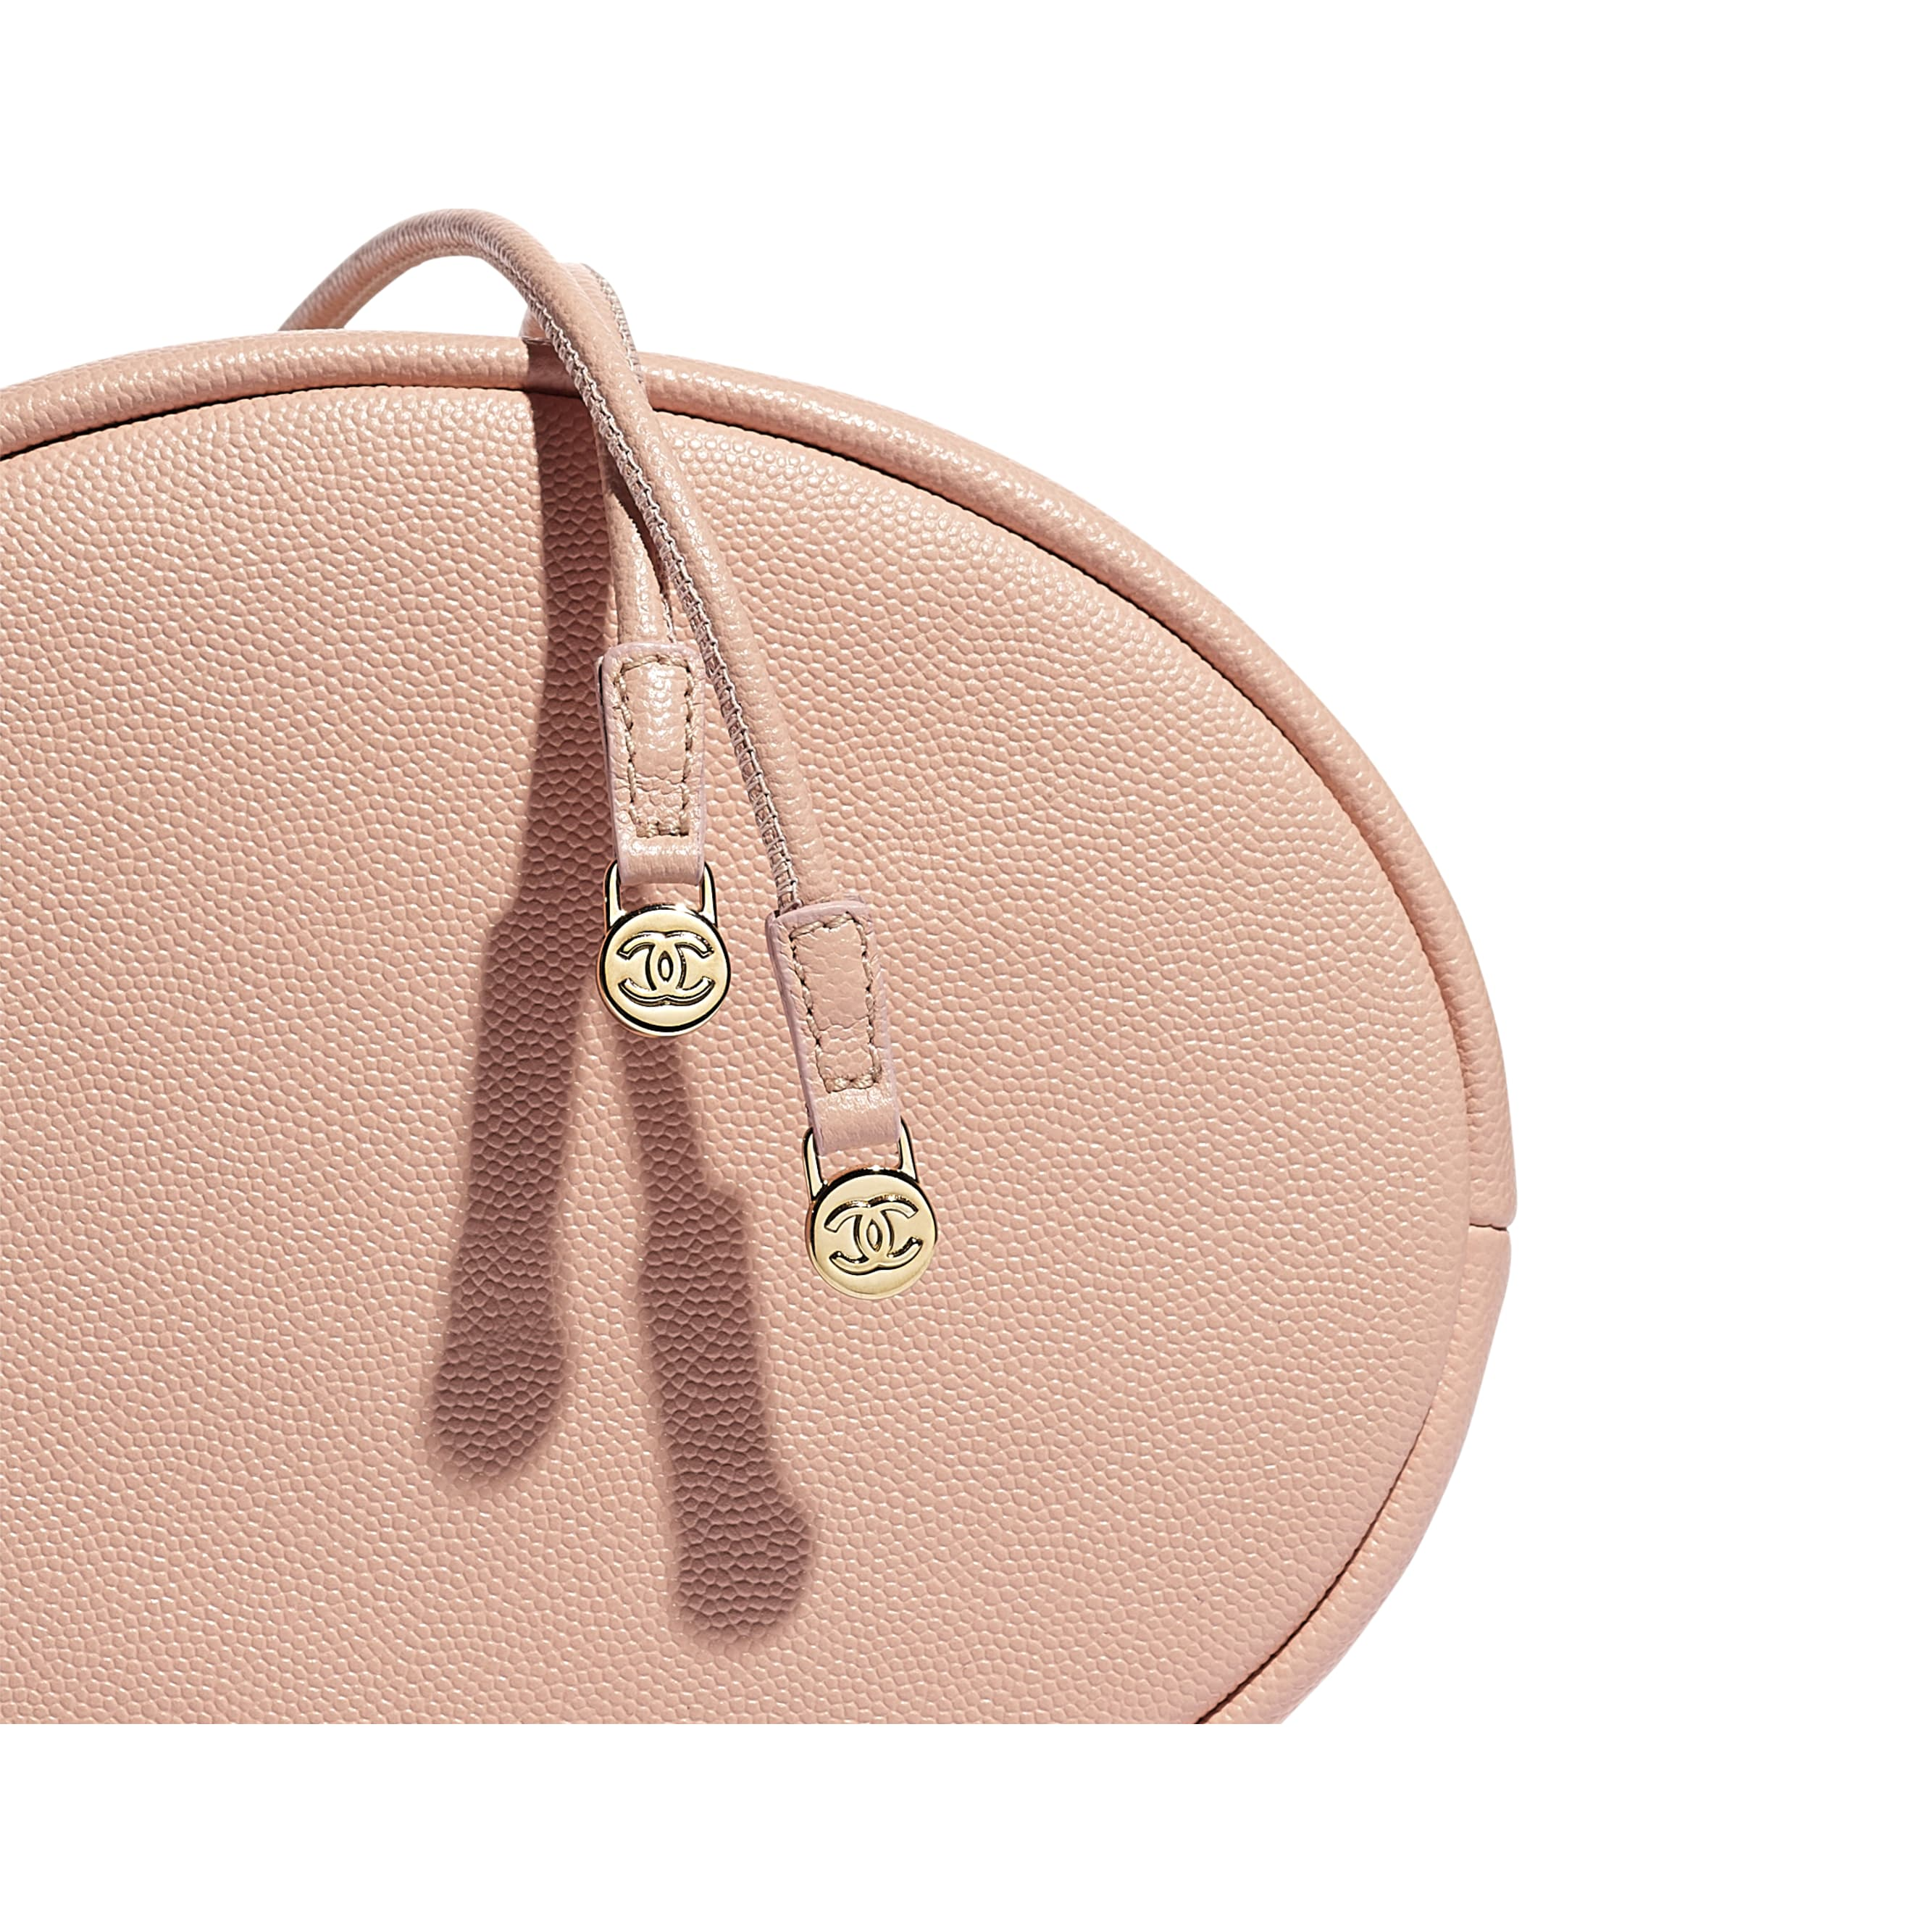 Small Drawstring Bag - Light Pink - Grained Calfskin, Studs & Gold-Tone Metal - Extra view - see standard sized version